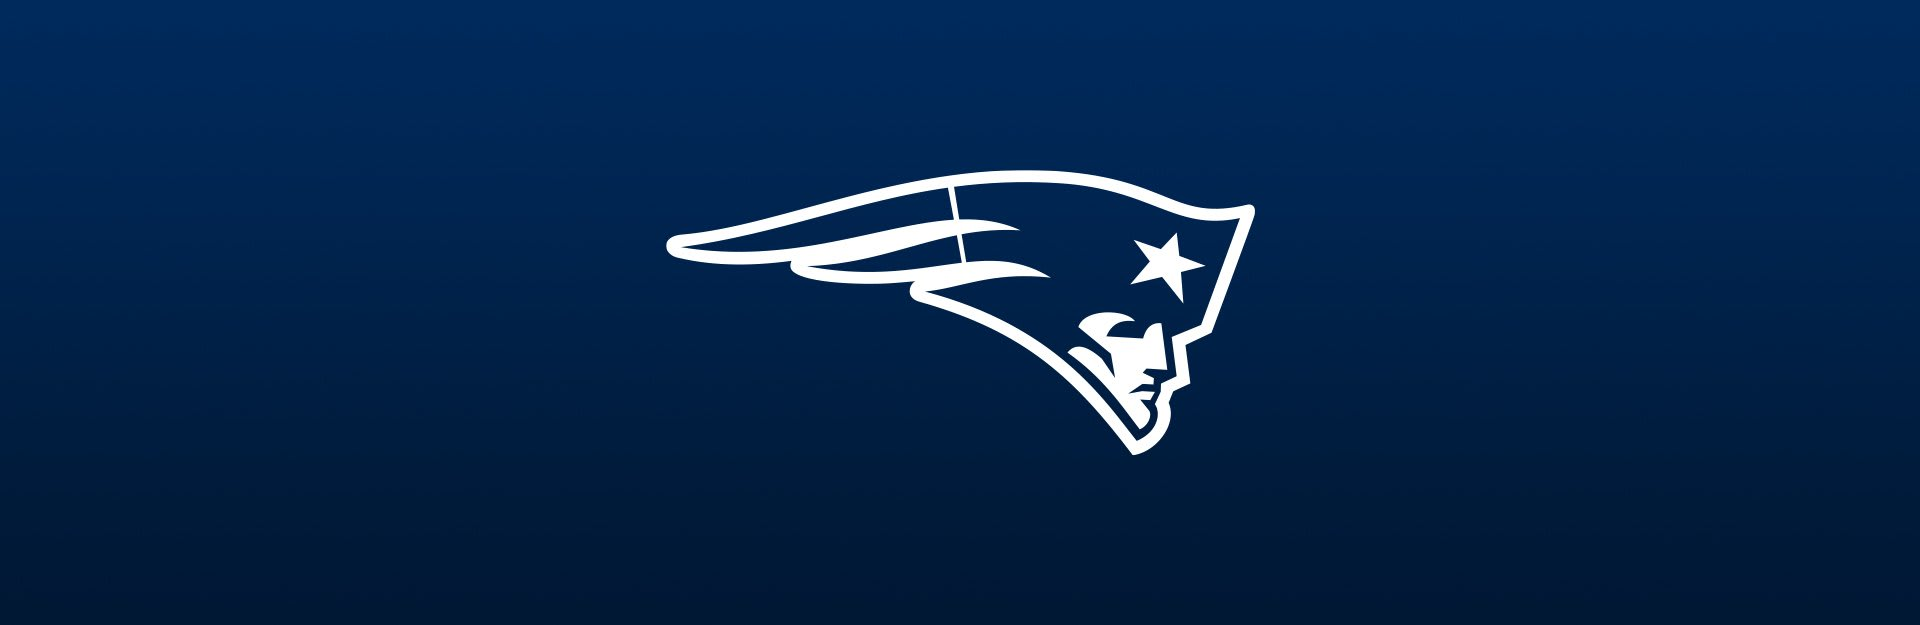 New England Patriots logo overlaid on navy blue background